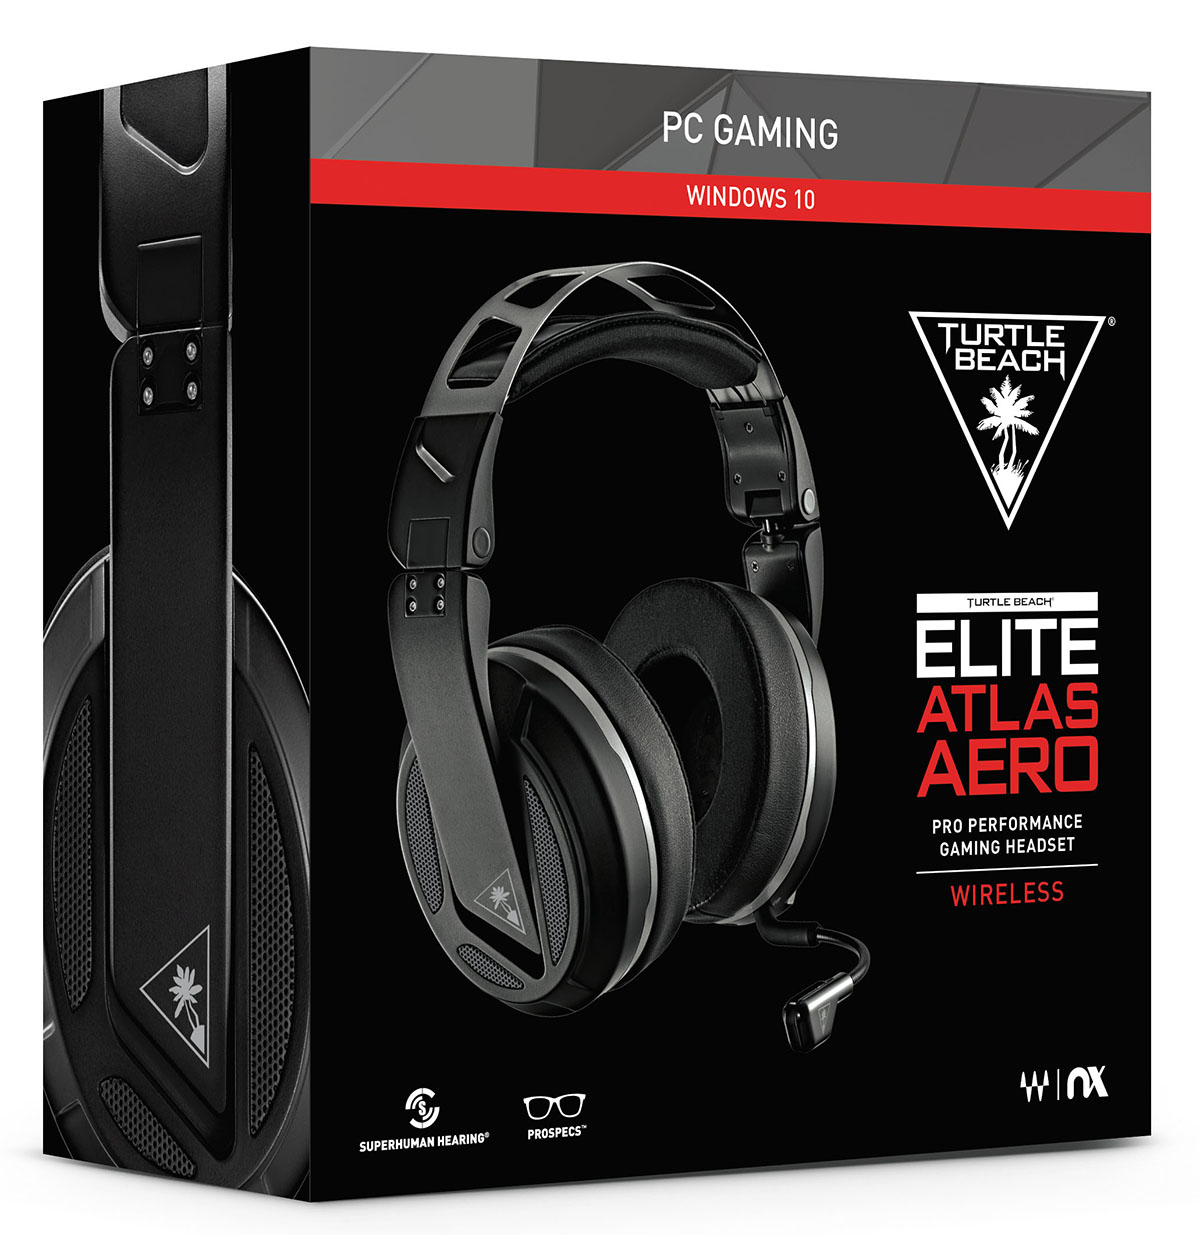 Turtle Beach elite atlas aero 1